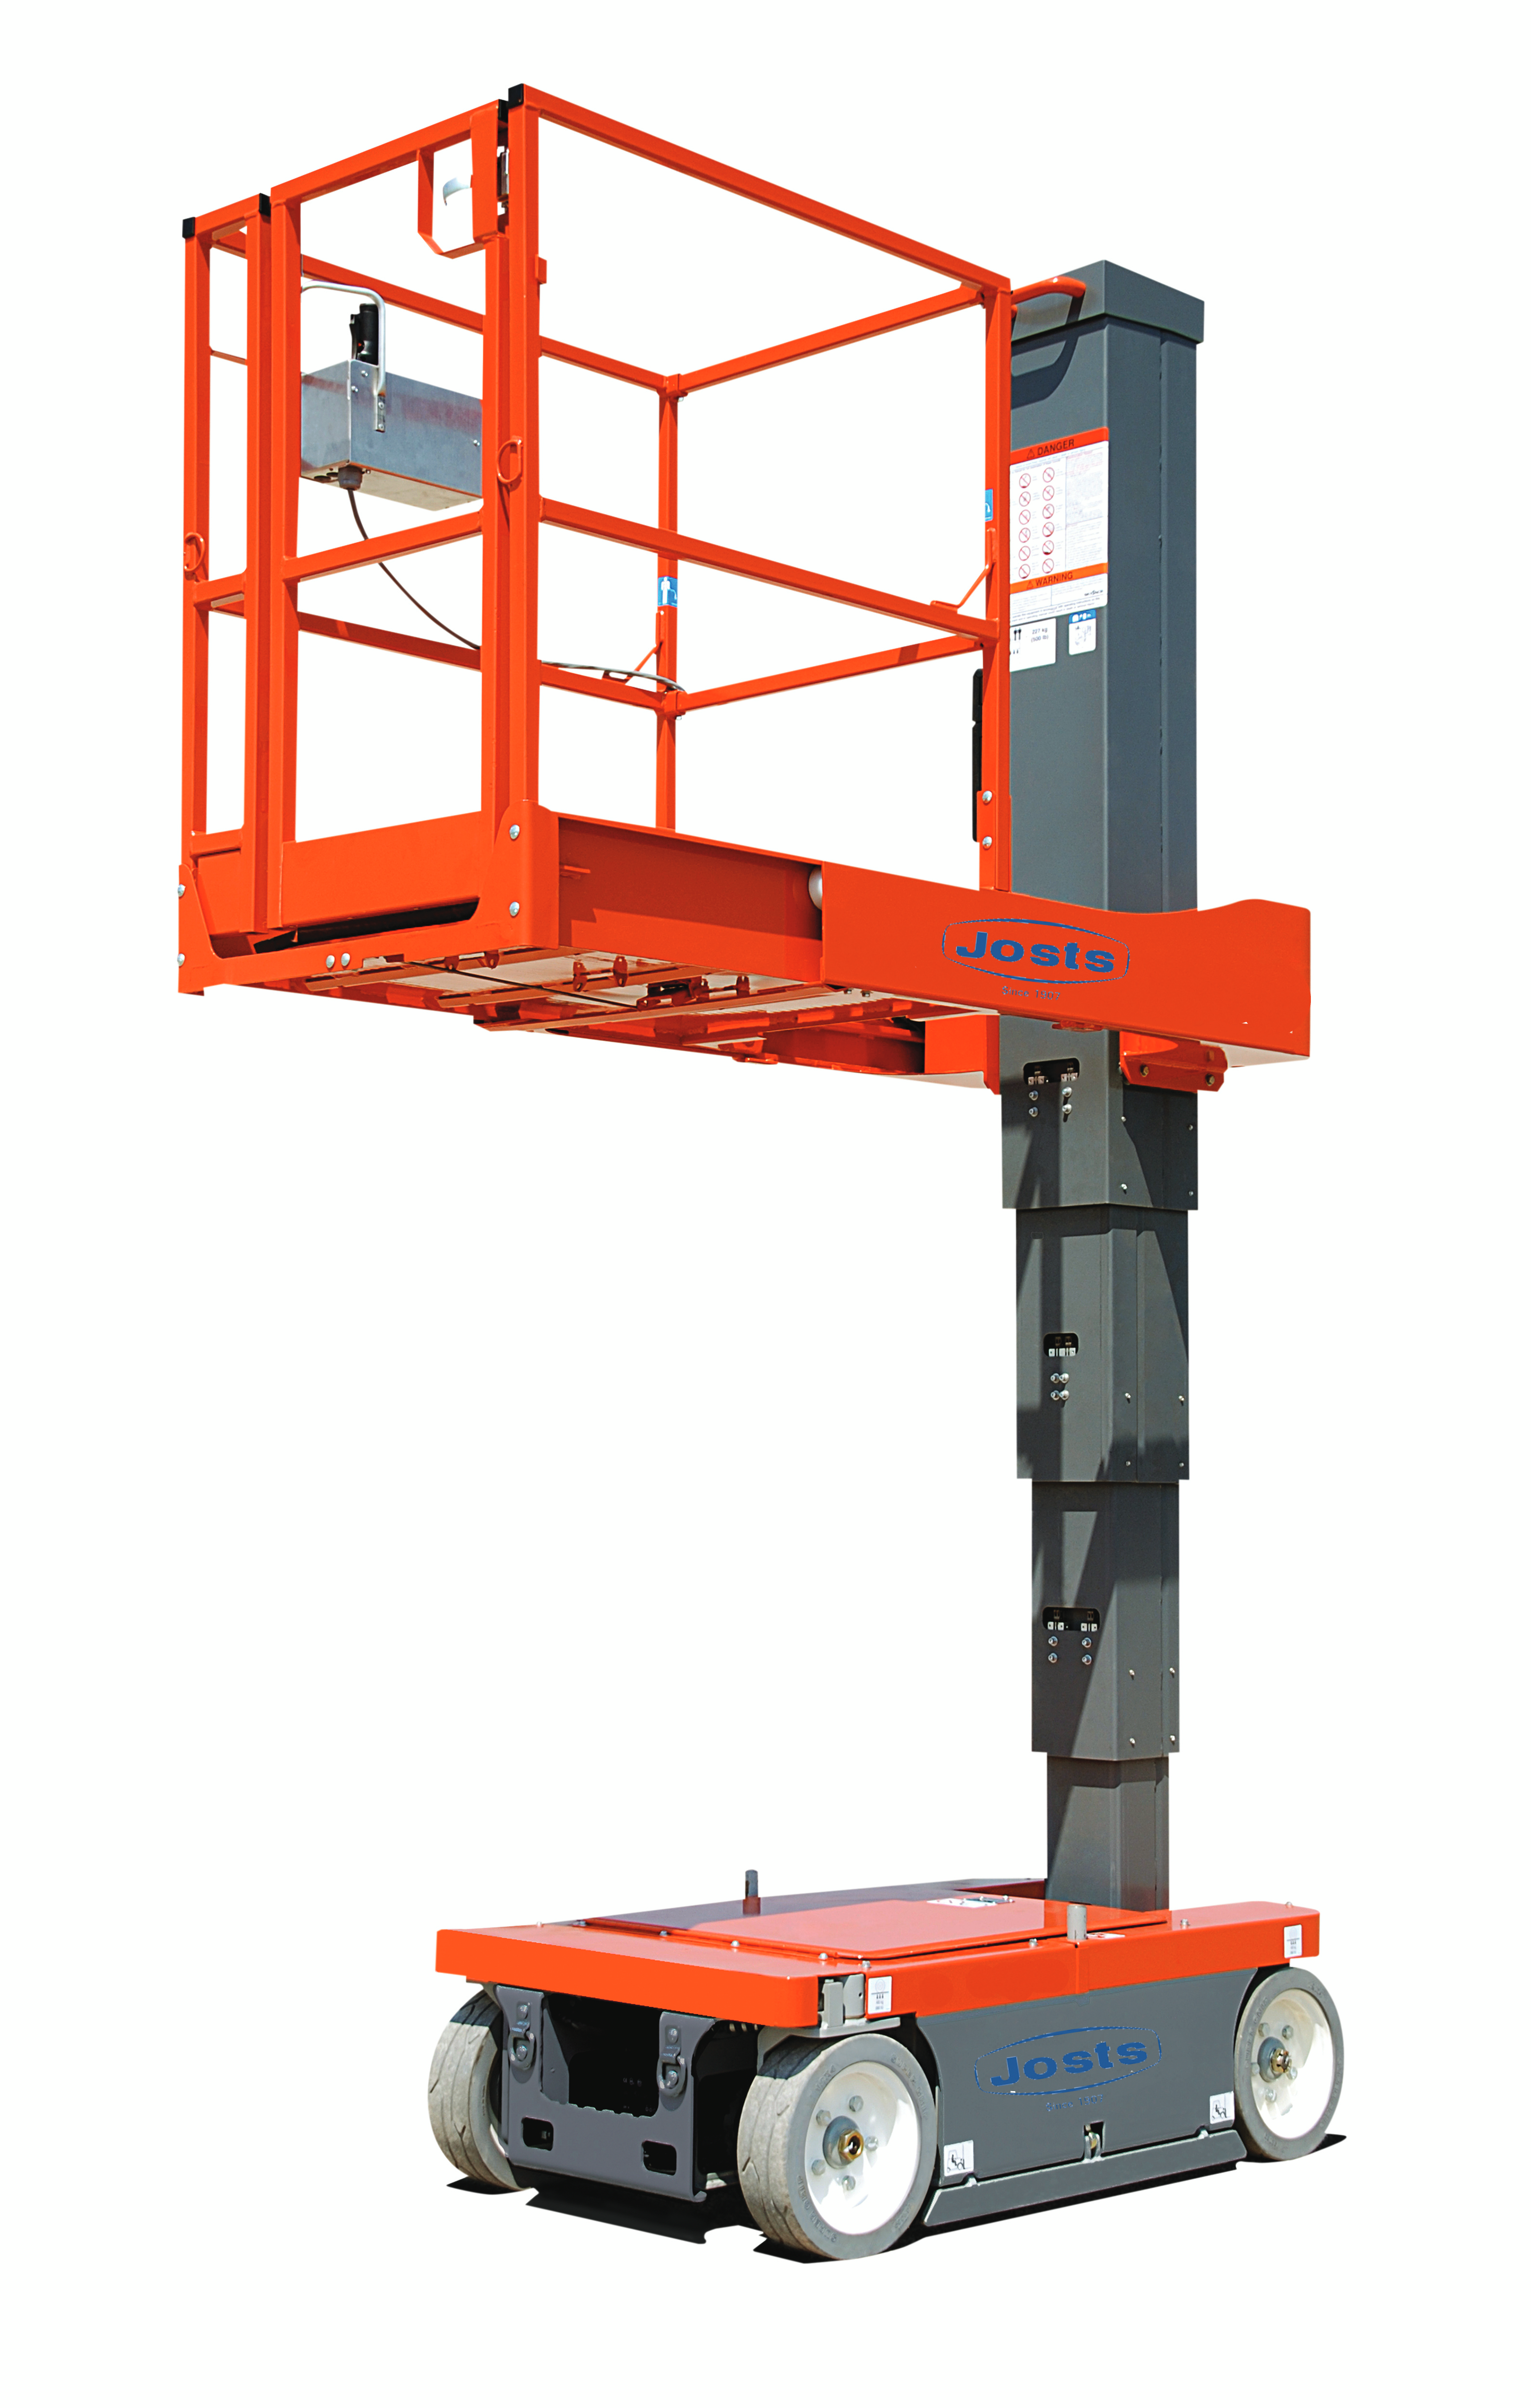 Vertical Mast Lifts (Self Propelled)